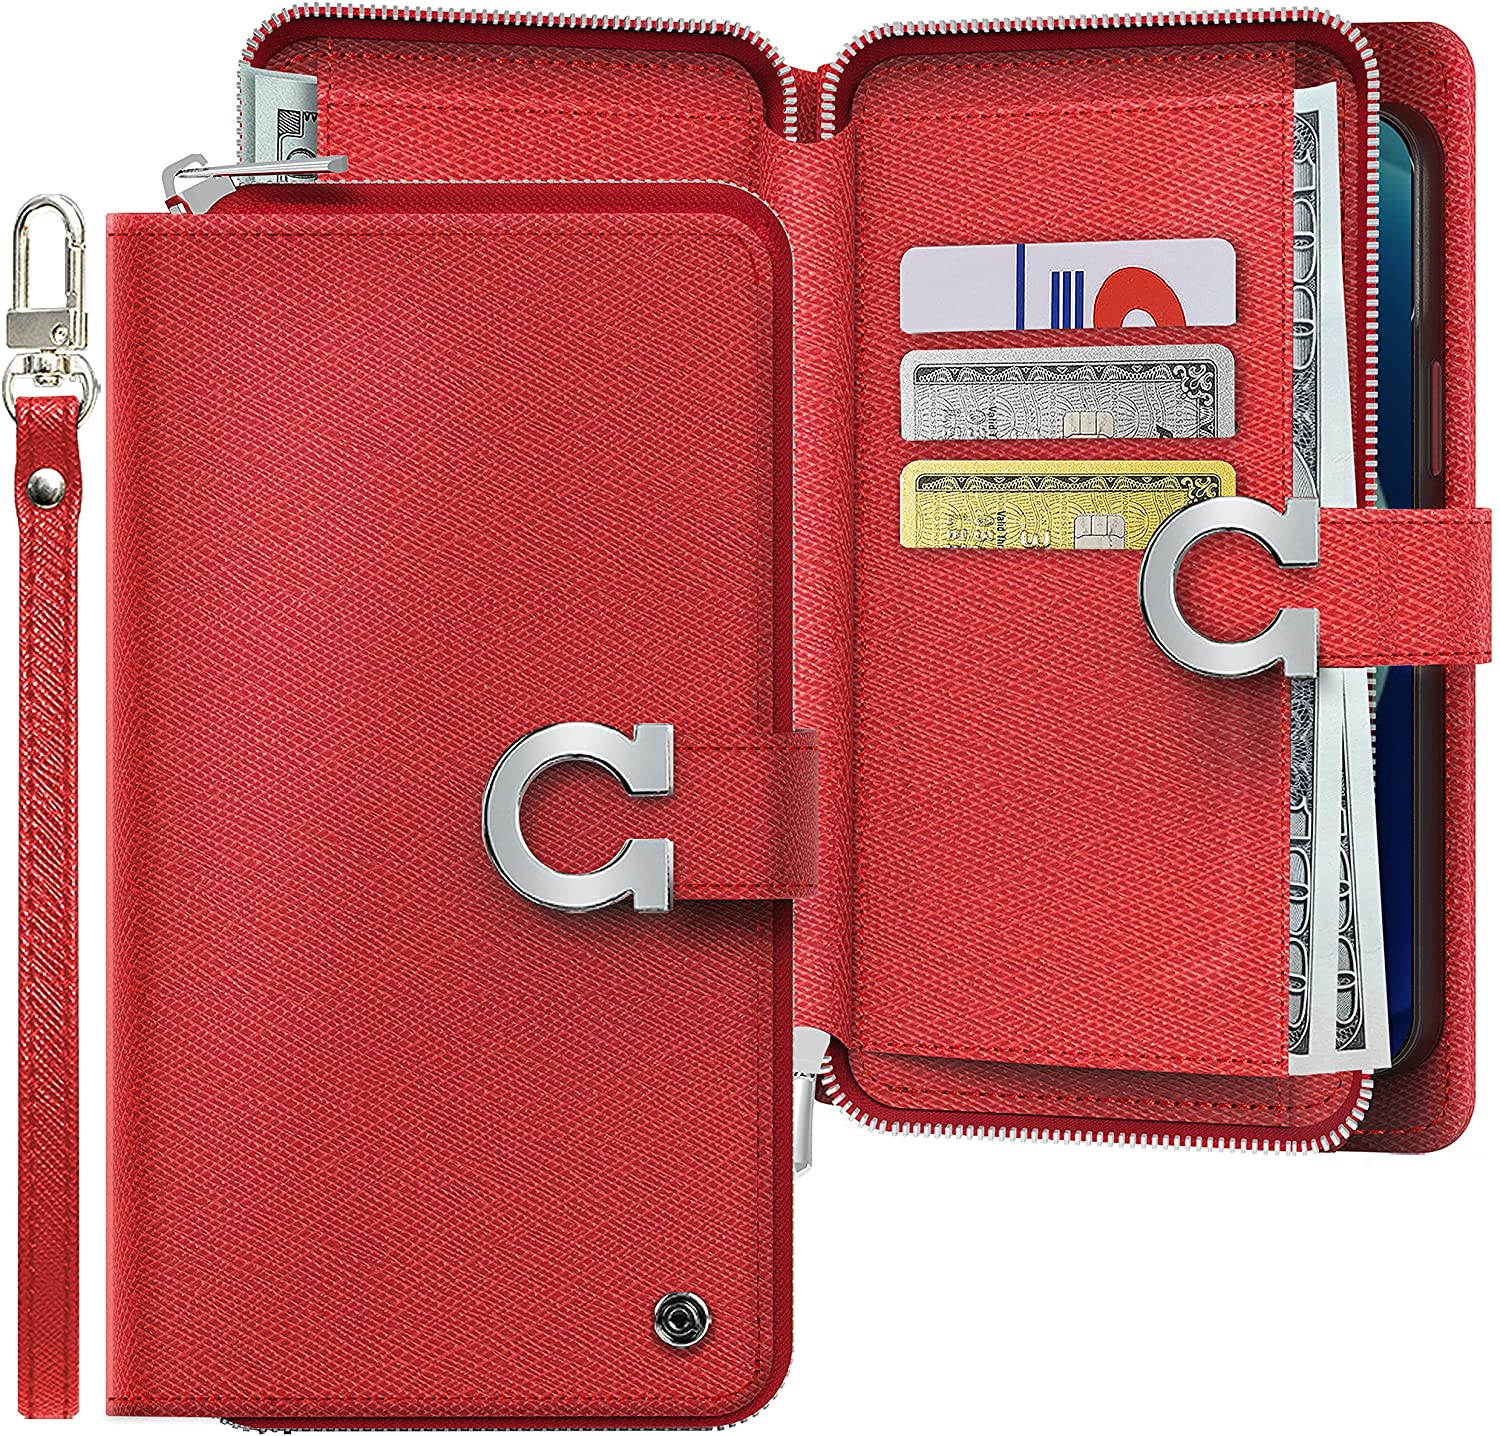 JUST4YOU Zipper Wallet Flip Cover Case Compatible with Apple iPhone 7/8 / SE (2020) [Handmade, Premium PU Leather, Credit Card Holder Slots, Hand Strap Included] - Red